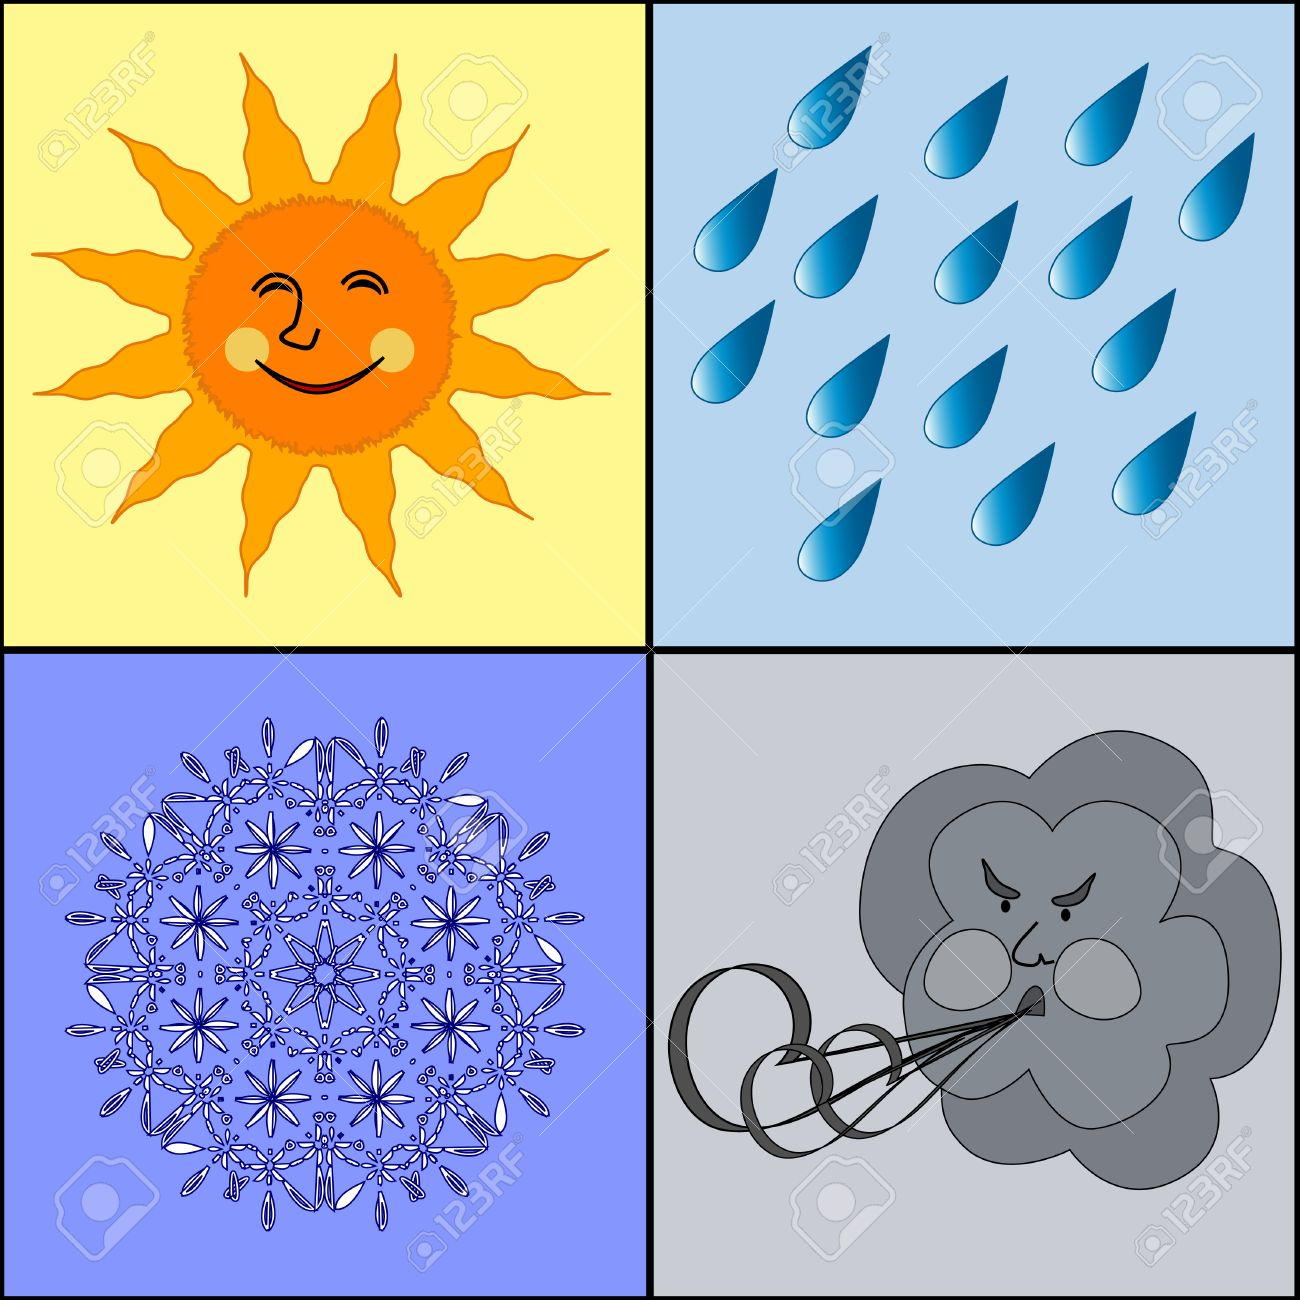 84c0ed2388 Vector - vector illustration of the weather icons. Four weather conditions  icon  sunny rainy windy wintry